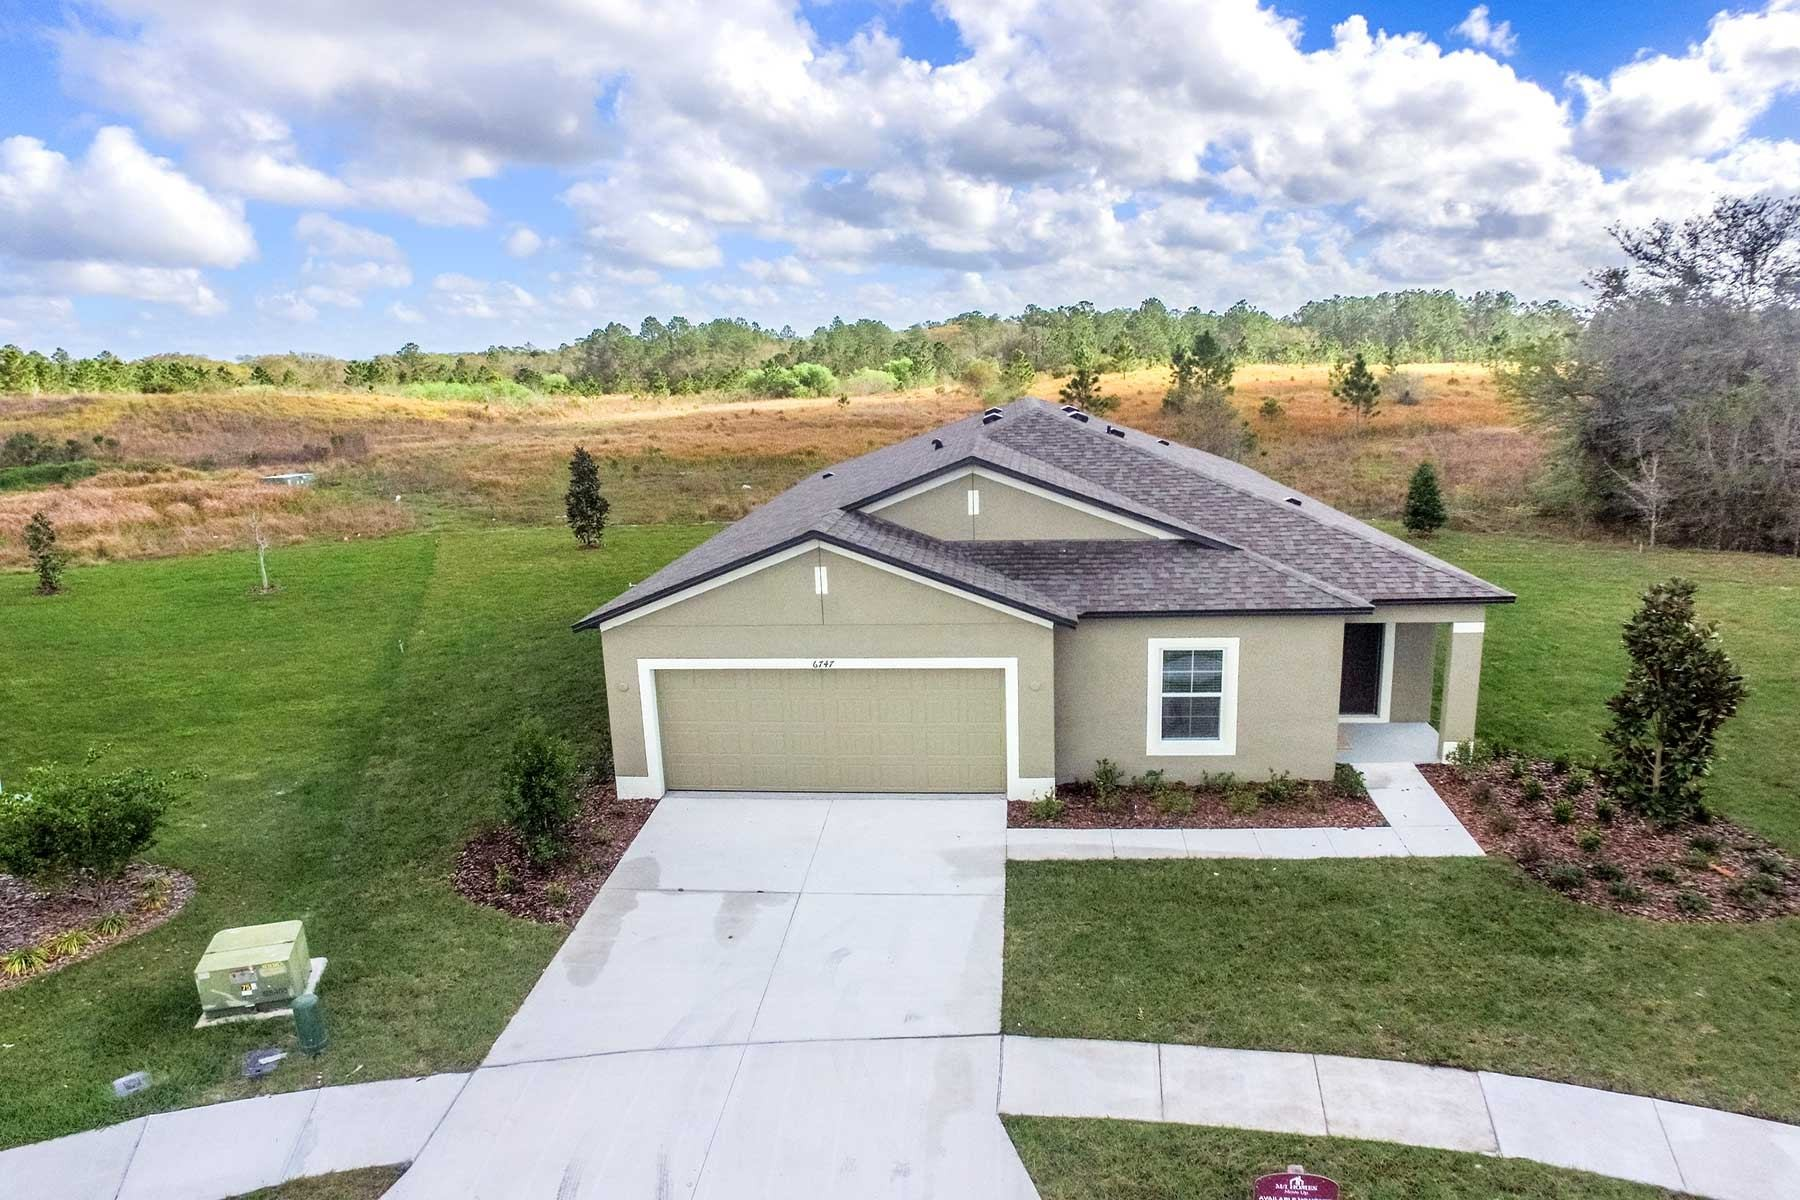 New Homes For Sale In The Villages, Florida